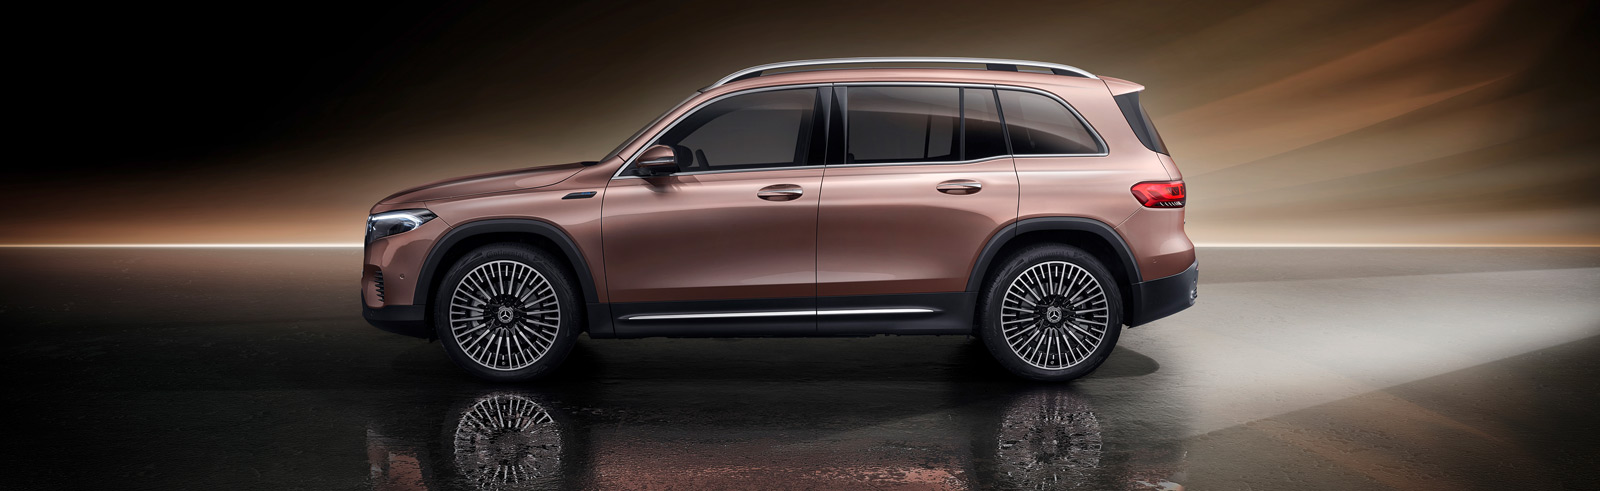 The 2022 Mercedes-Benz EQB goes official, will be available in China first, followed by Europe and the USA